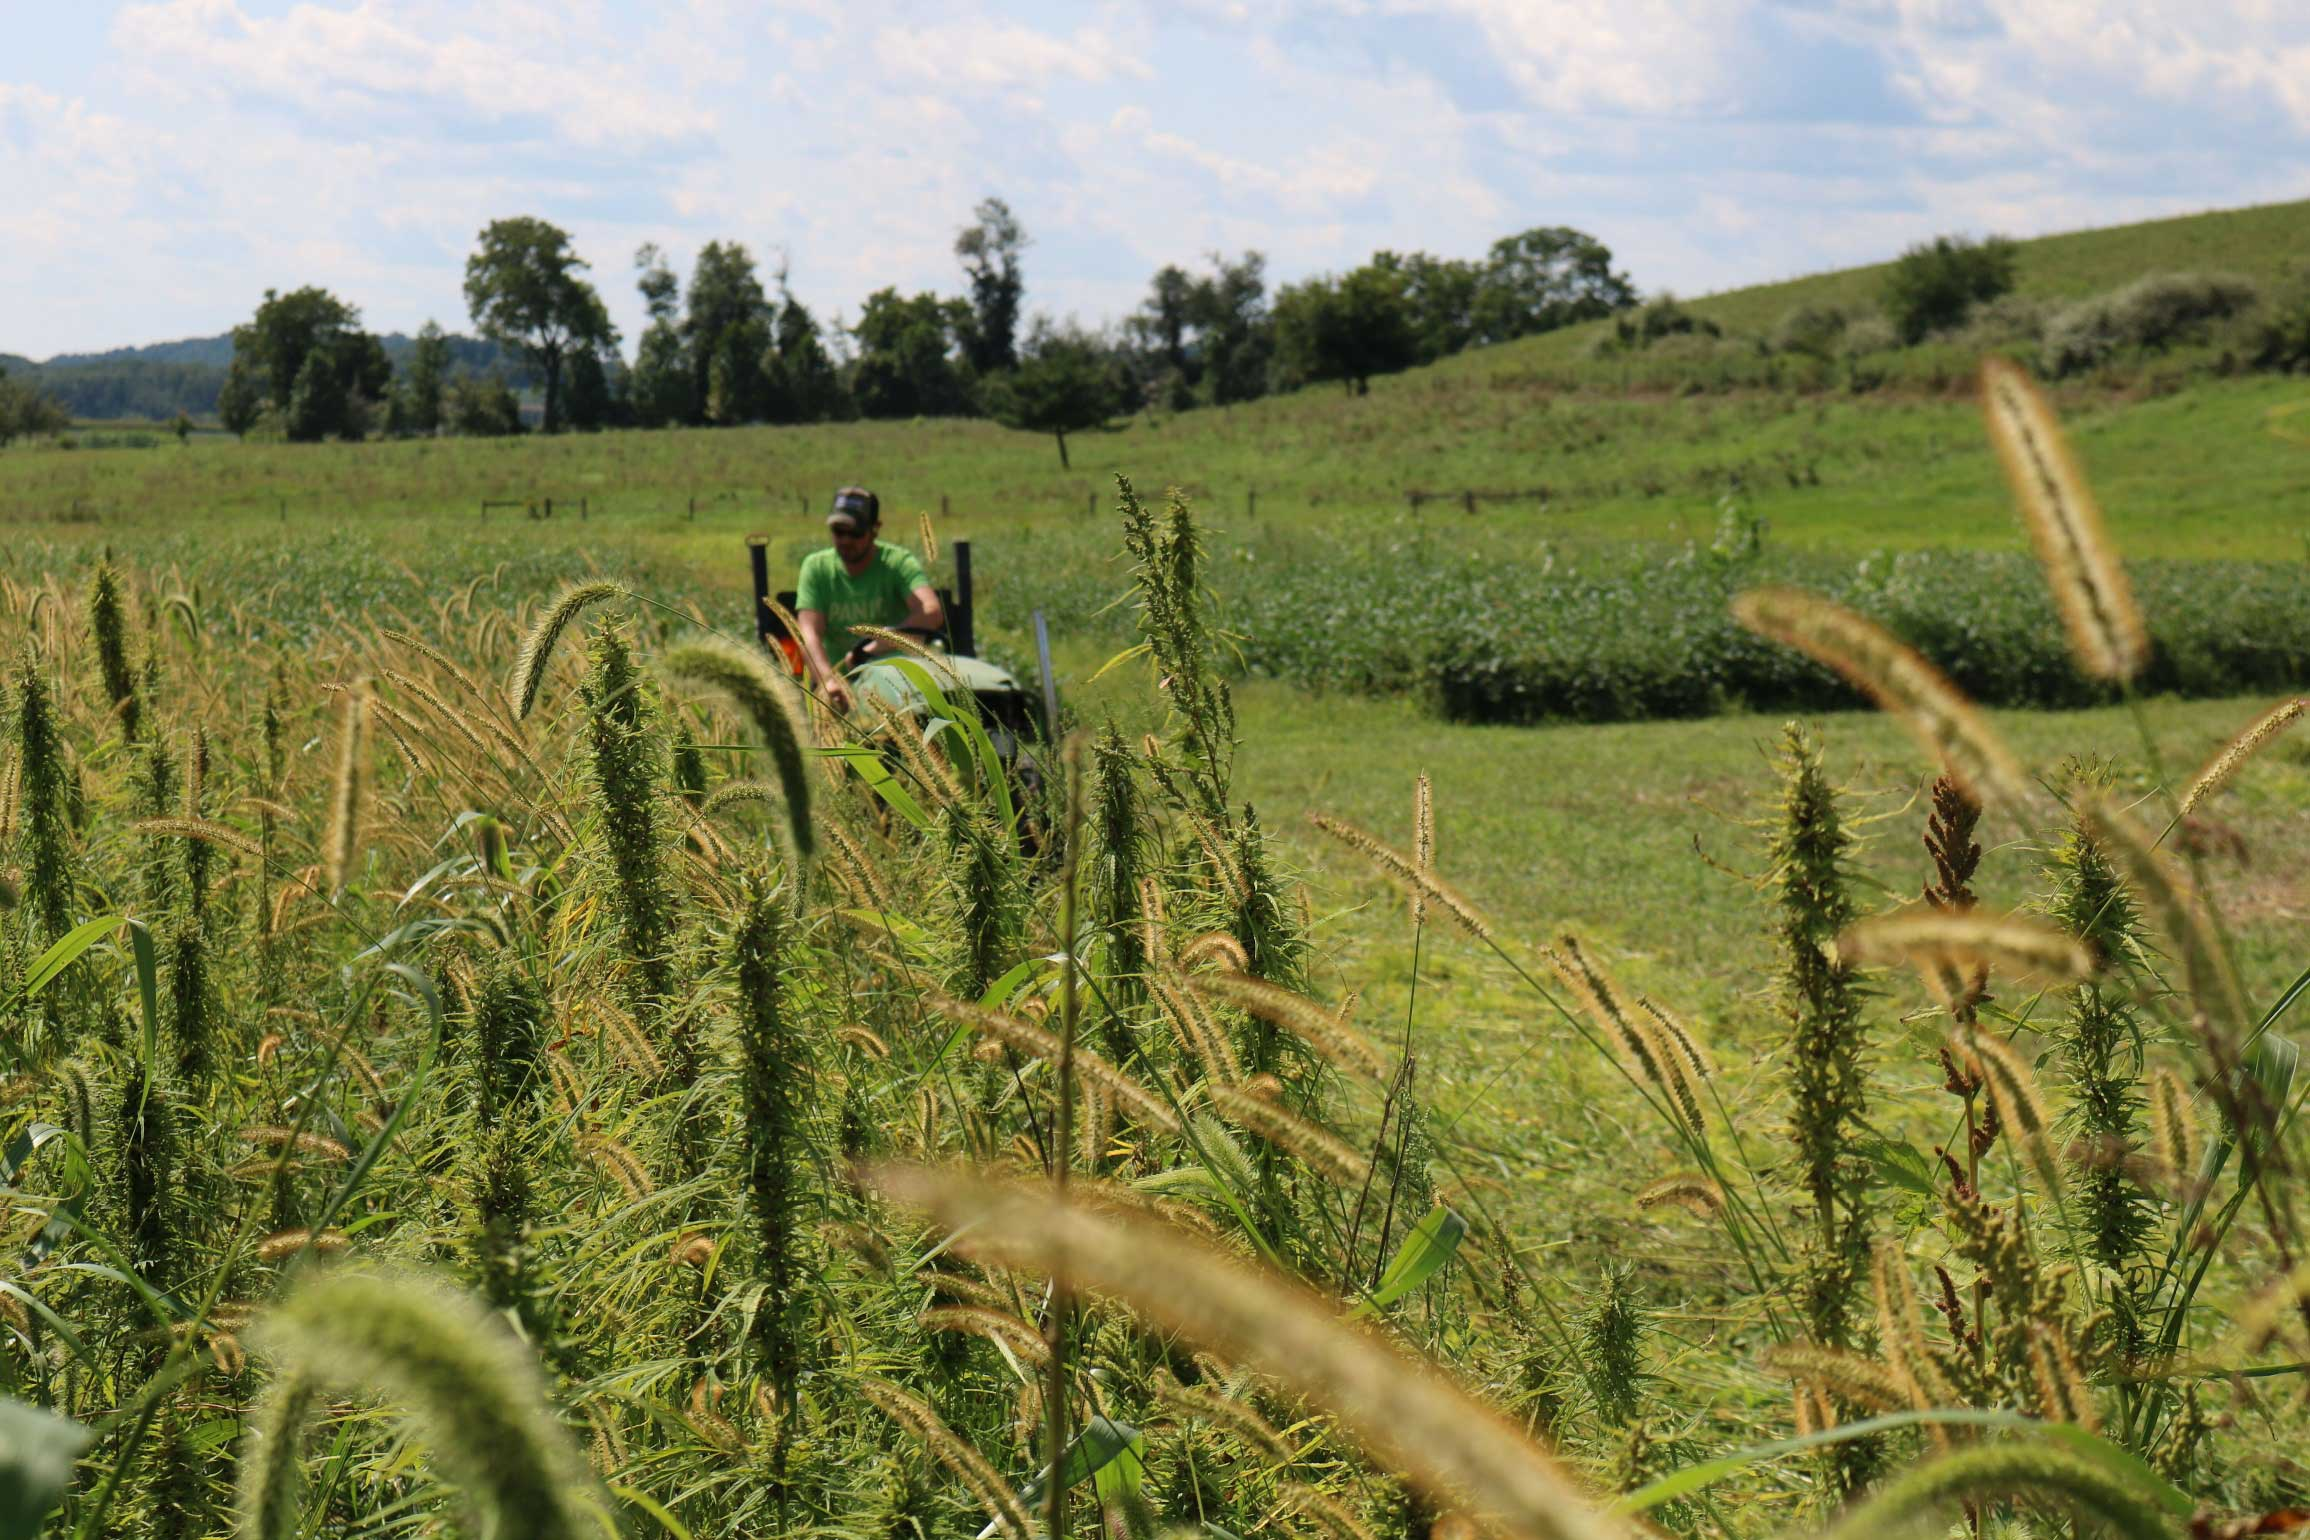 Photo: Hemp growing at Rodale Institute, a global leader of regenerative organic agriculture, in Kutztown, PA. 2019 marks Rodale Institute's third year of industrial hemp research